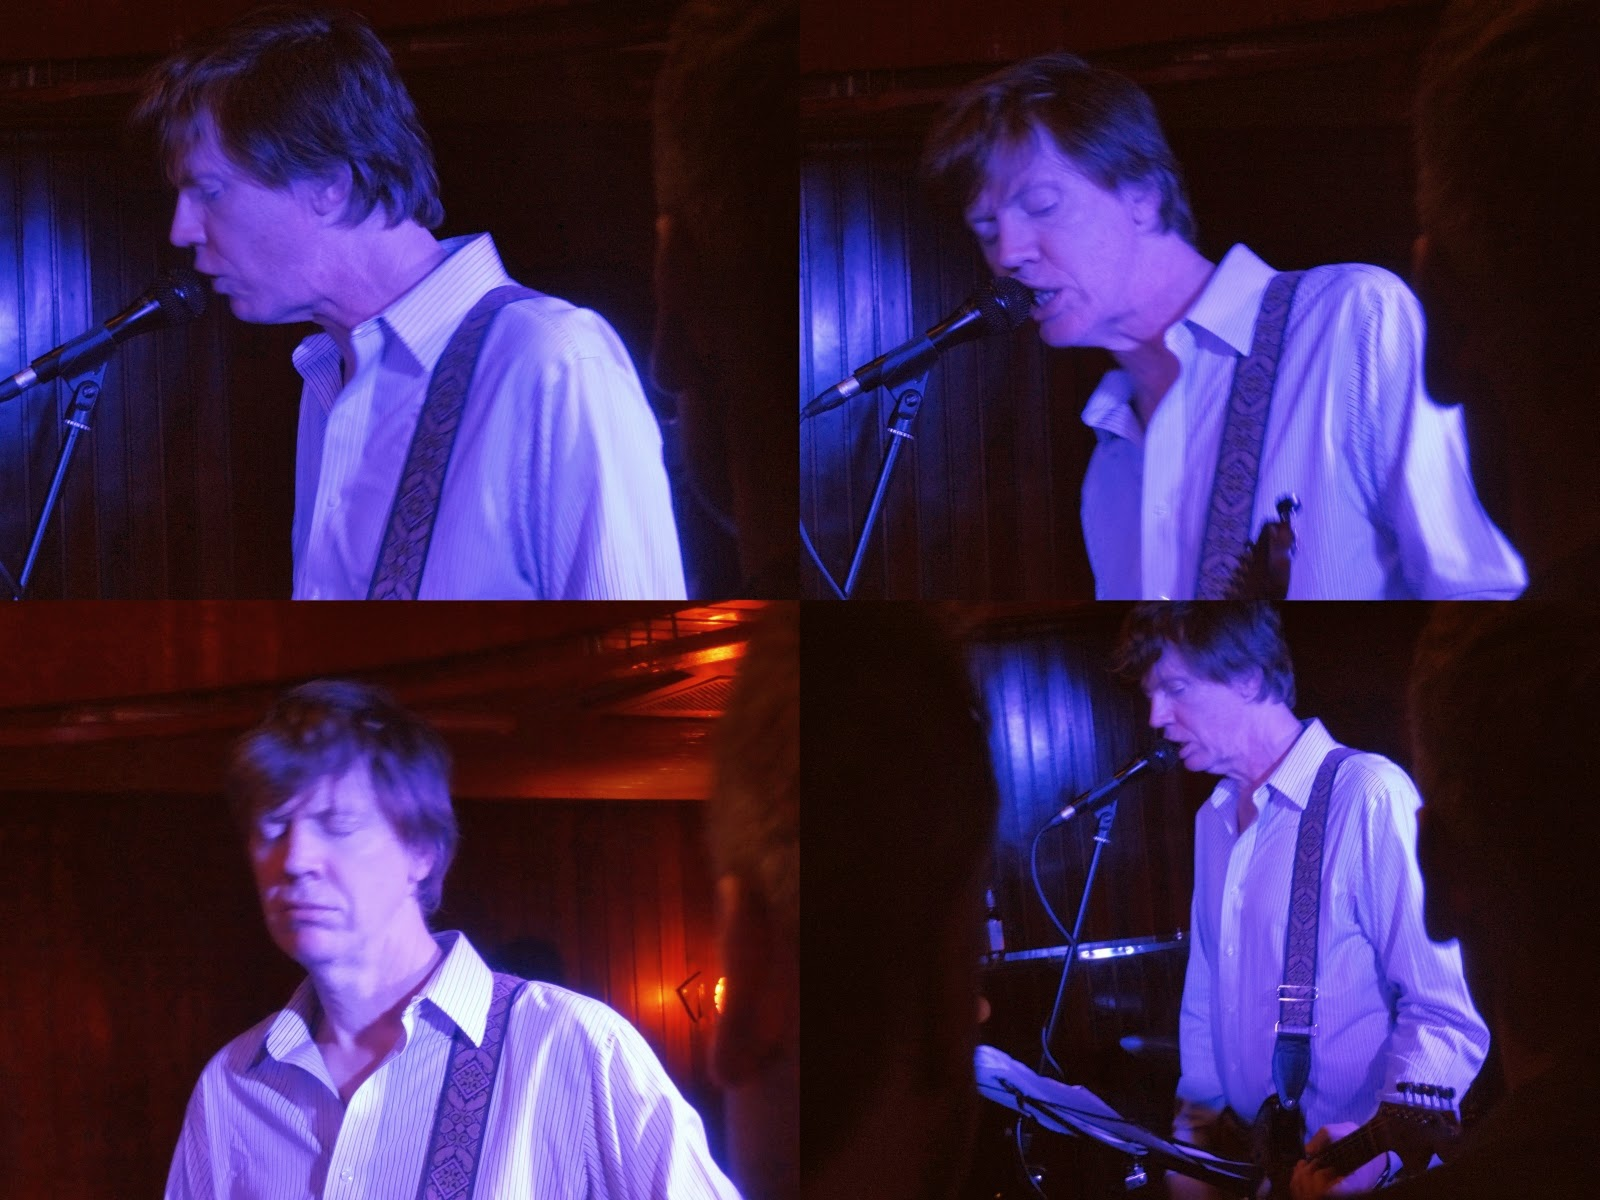 31.03.2014 Köln - King Georg: Thurston Moore w/ Steve Shelley & Jason Sedwards